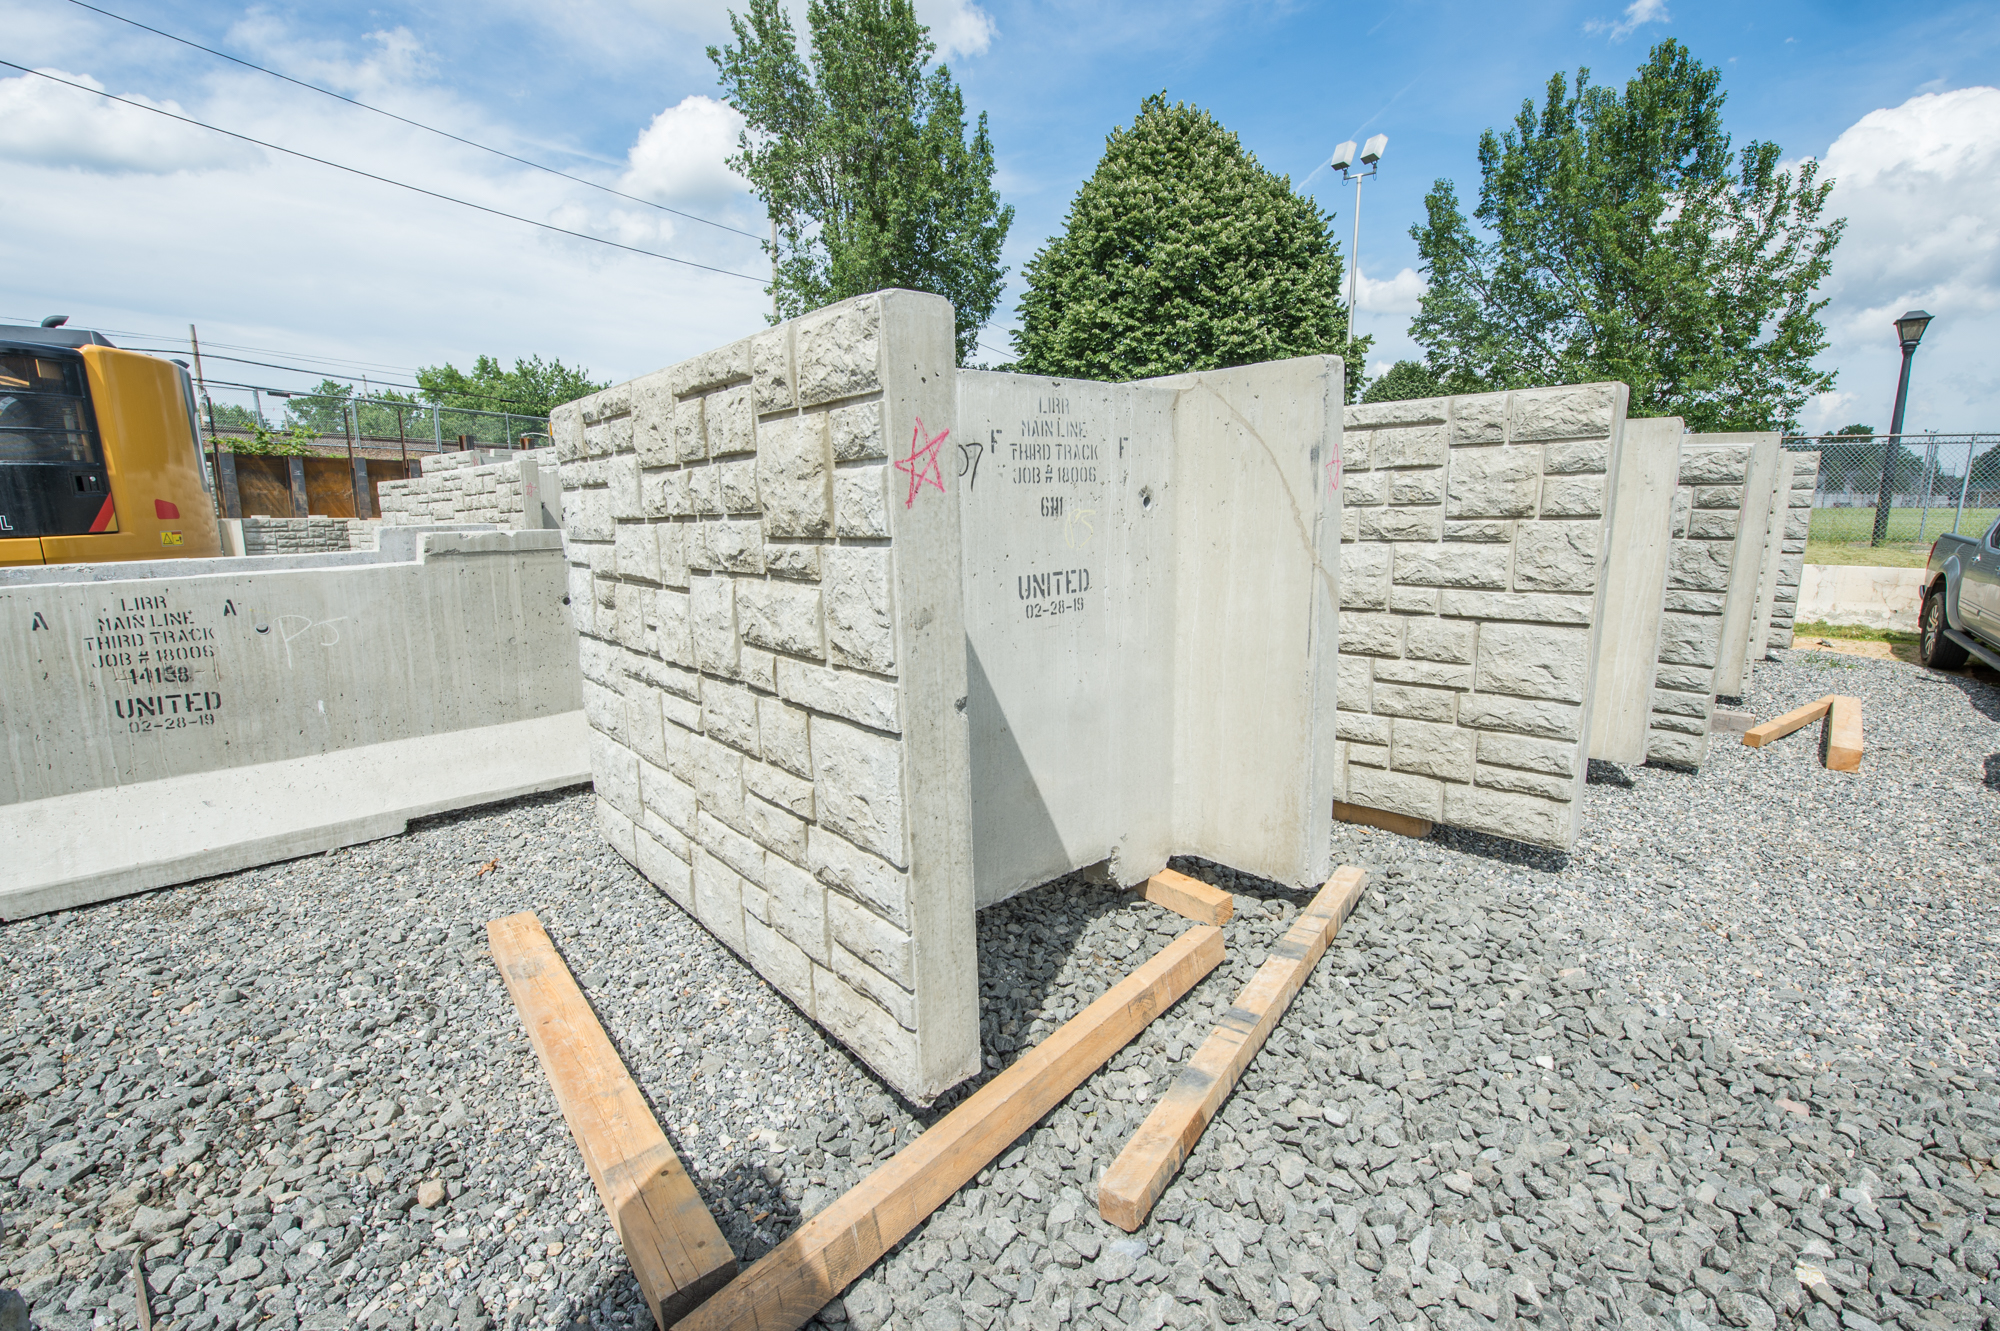 Sound Walls Delivered to Floral Park - 06-26-19